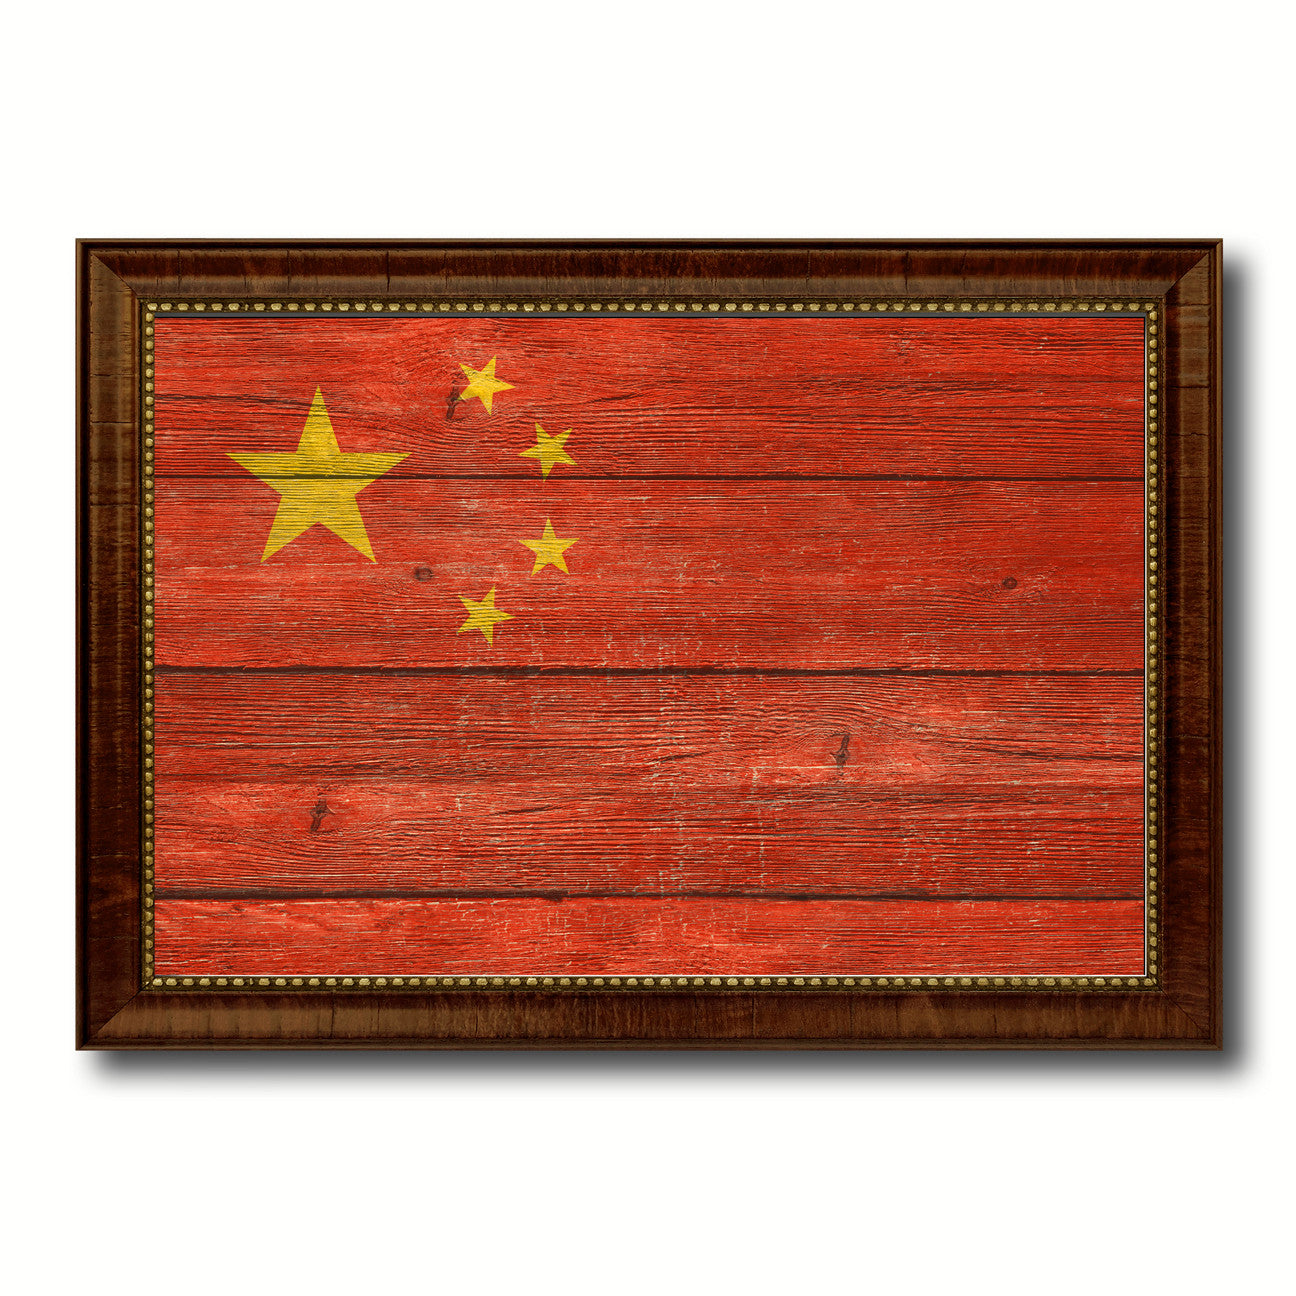 China Country Flag Texture Canvas Print with Brown Custom Picture Frame Home Decor Gift Ideas Wall Art Decoration